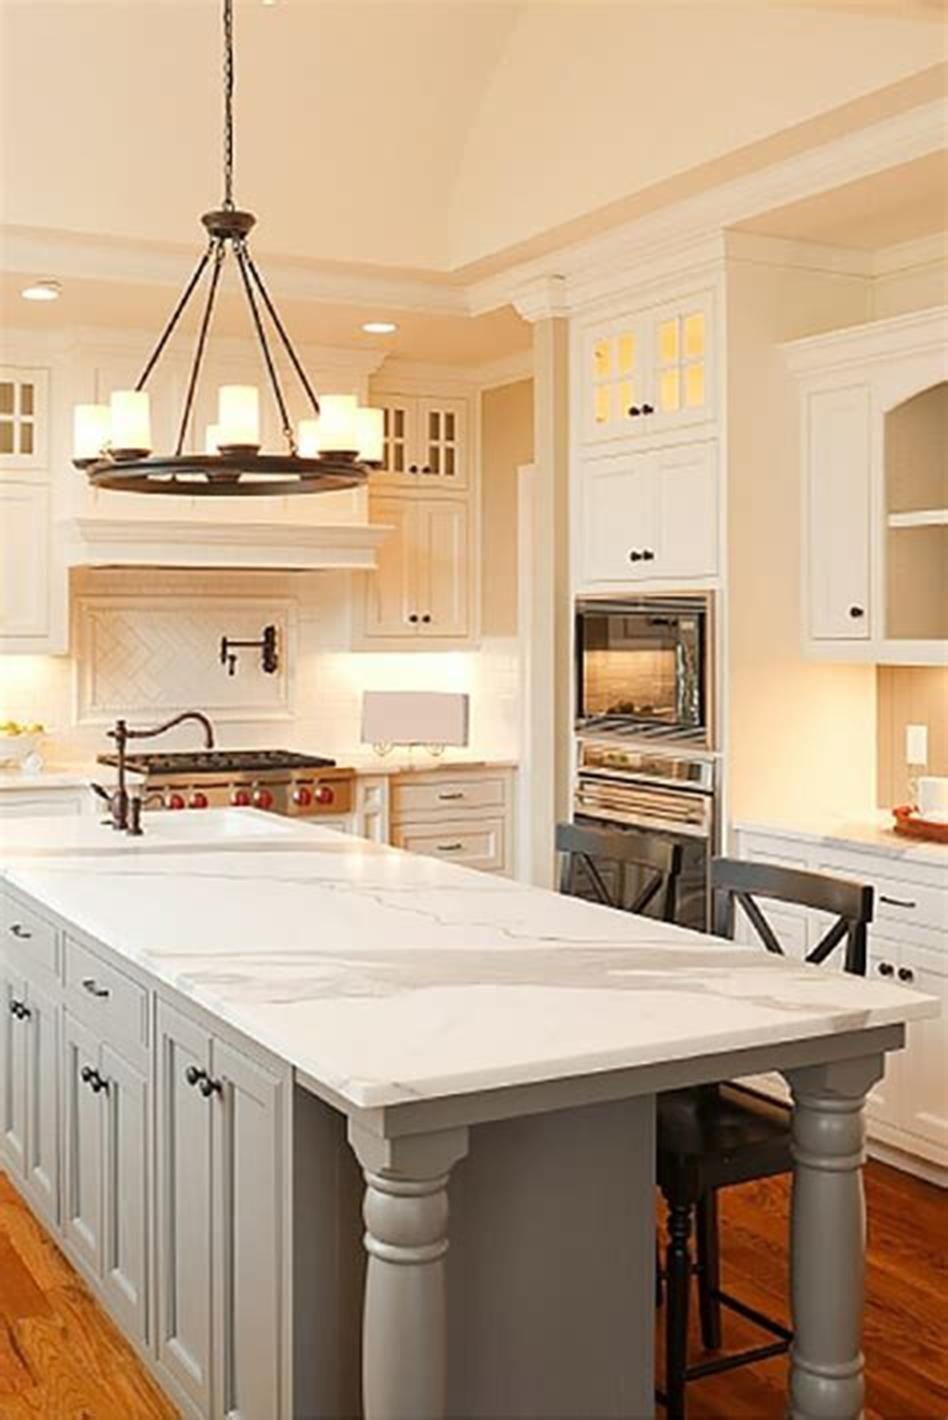 46 most popular kitchen design ideas 2019 youll love 3 on most popular interior paint colors for 2021 id=79384